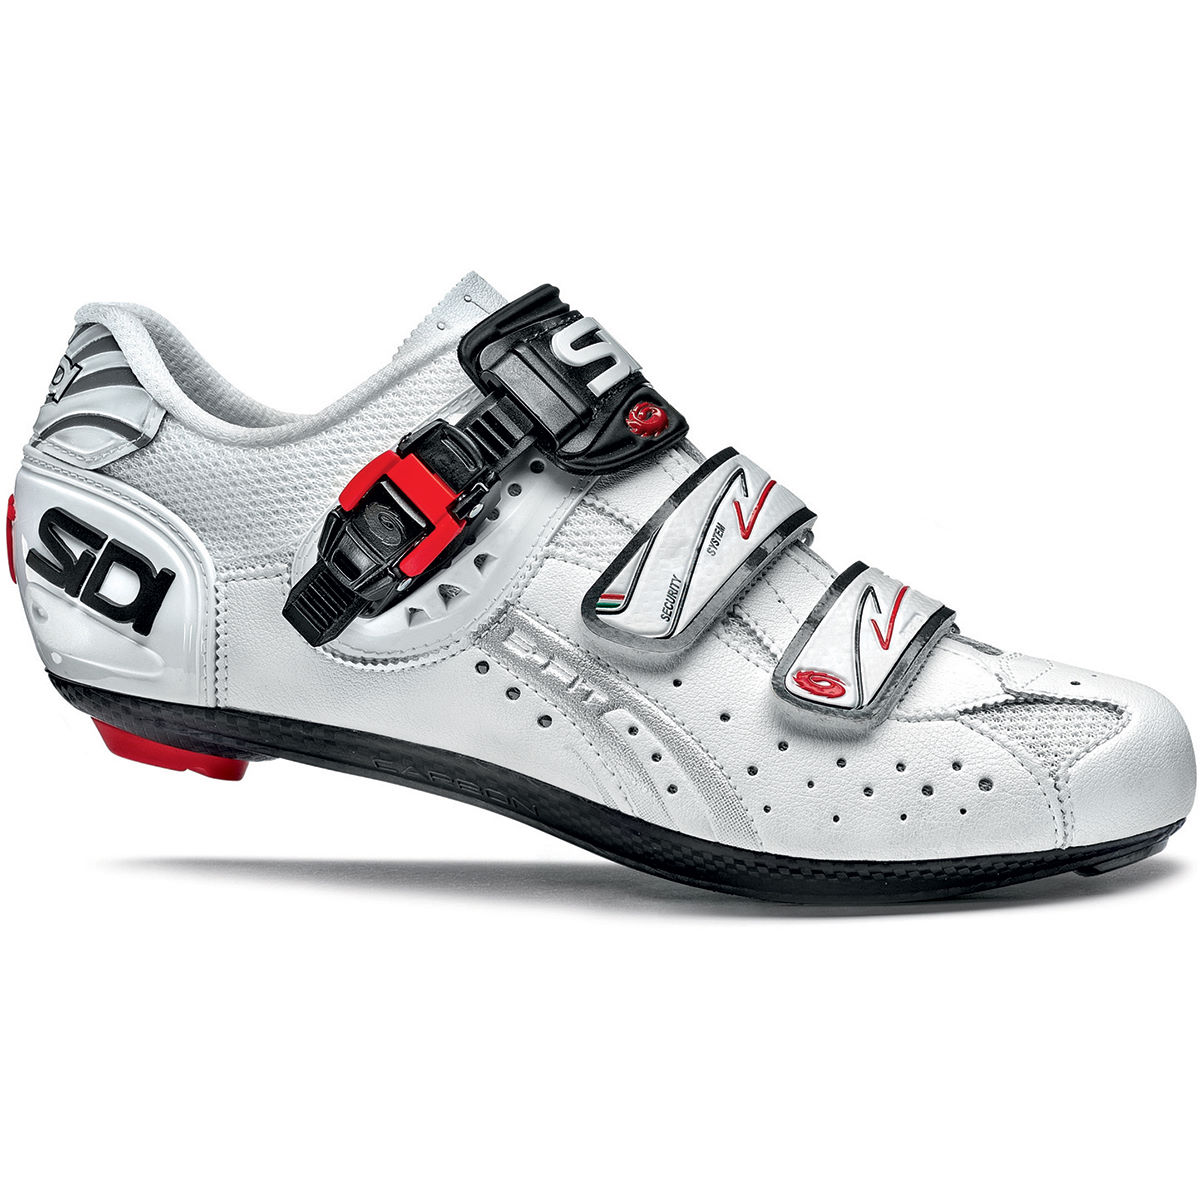 Chaussures de route Sidi Genius 5-Fit Carbone Mega (2015) - 50 Blanc